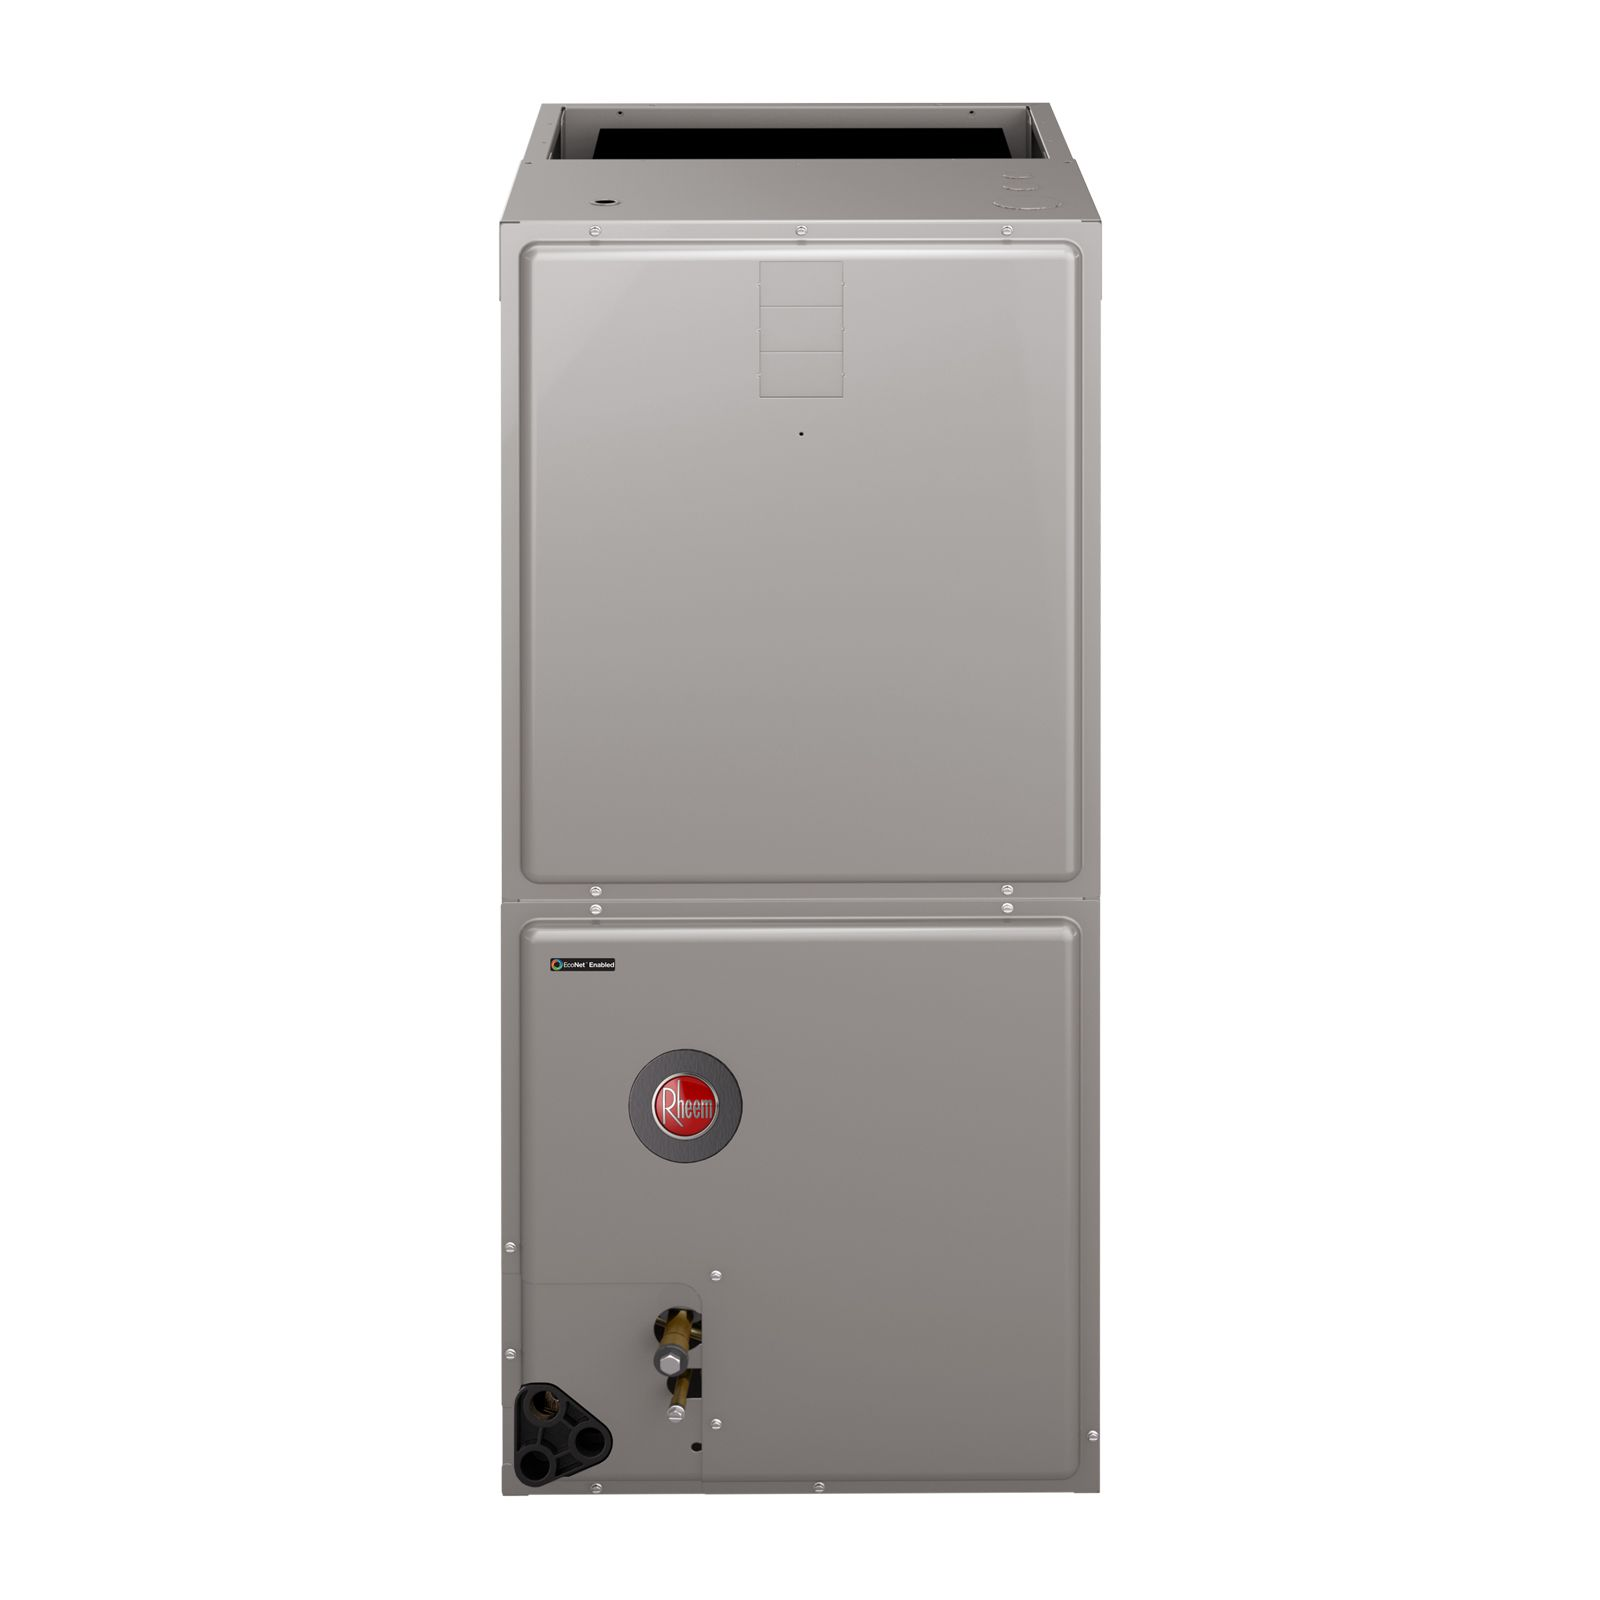 Compare products of Central AC/Heat Pump on